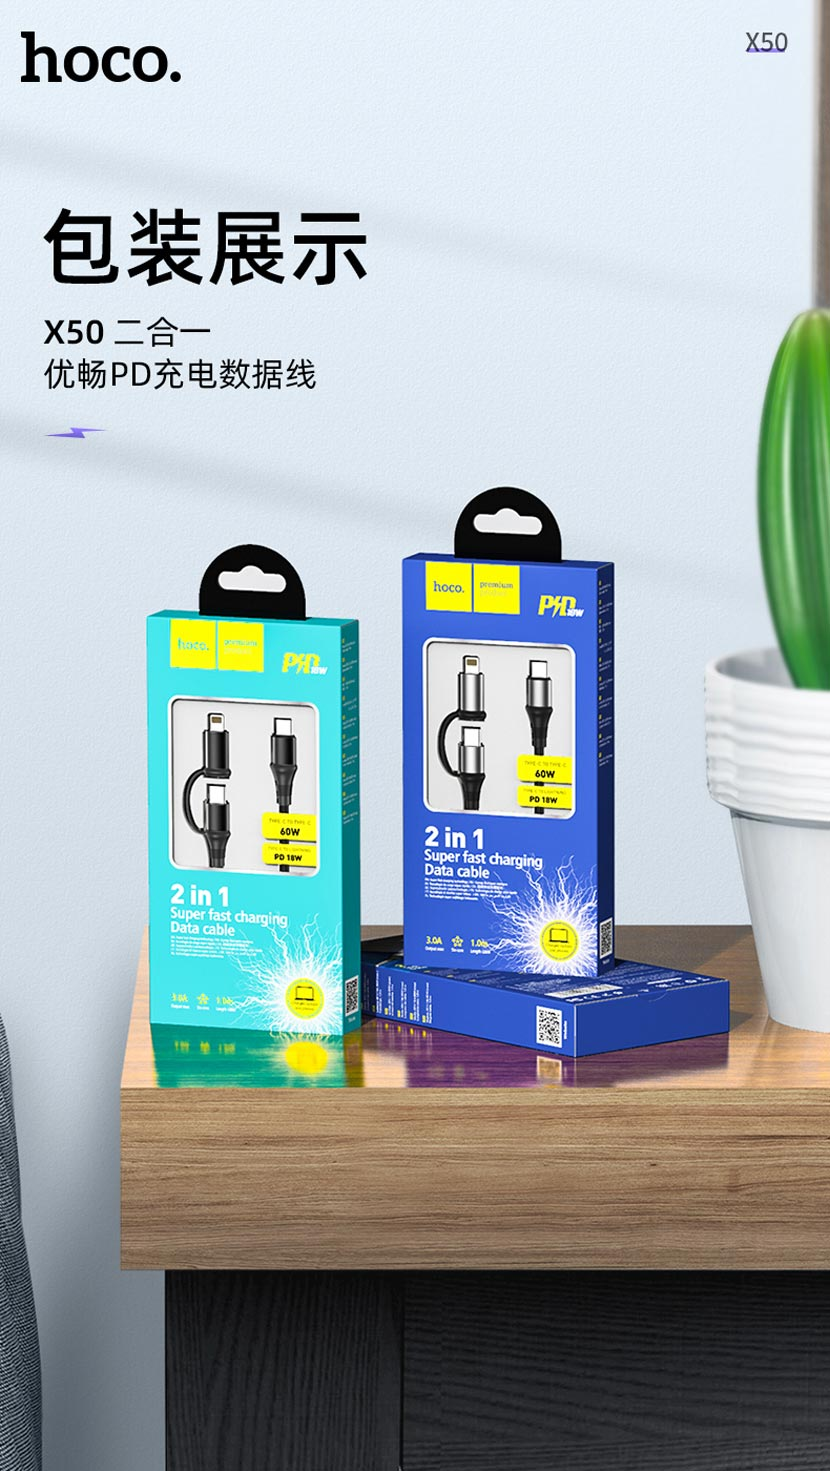 hoco news x50 exquisito charging data cable 2in1 package cn